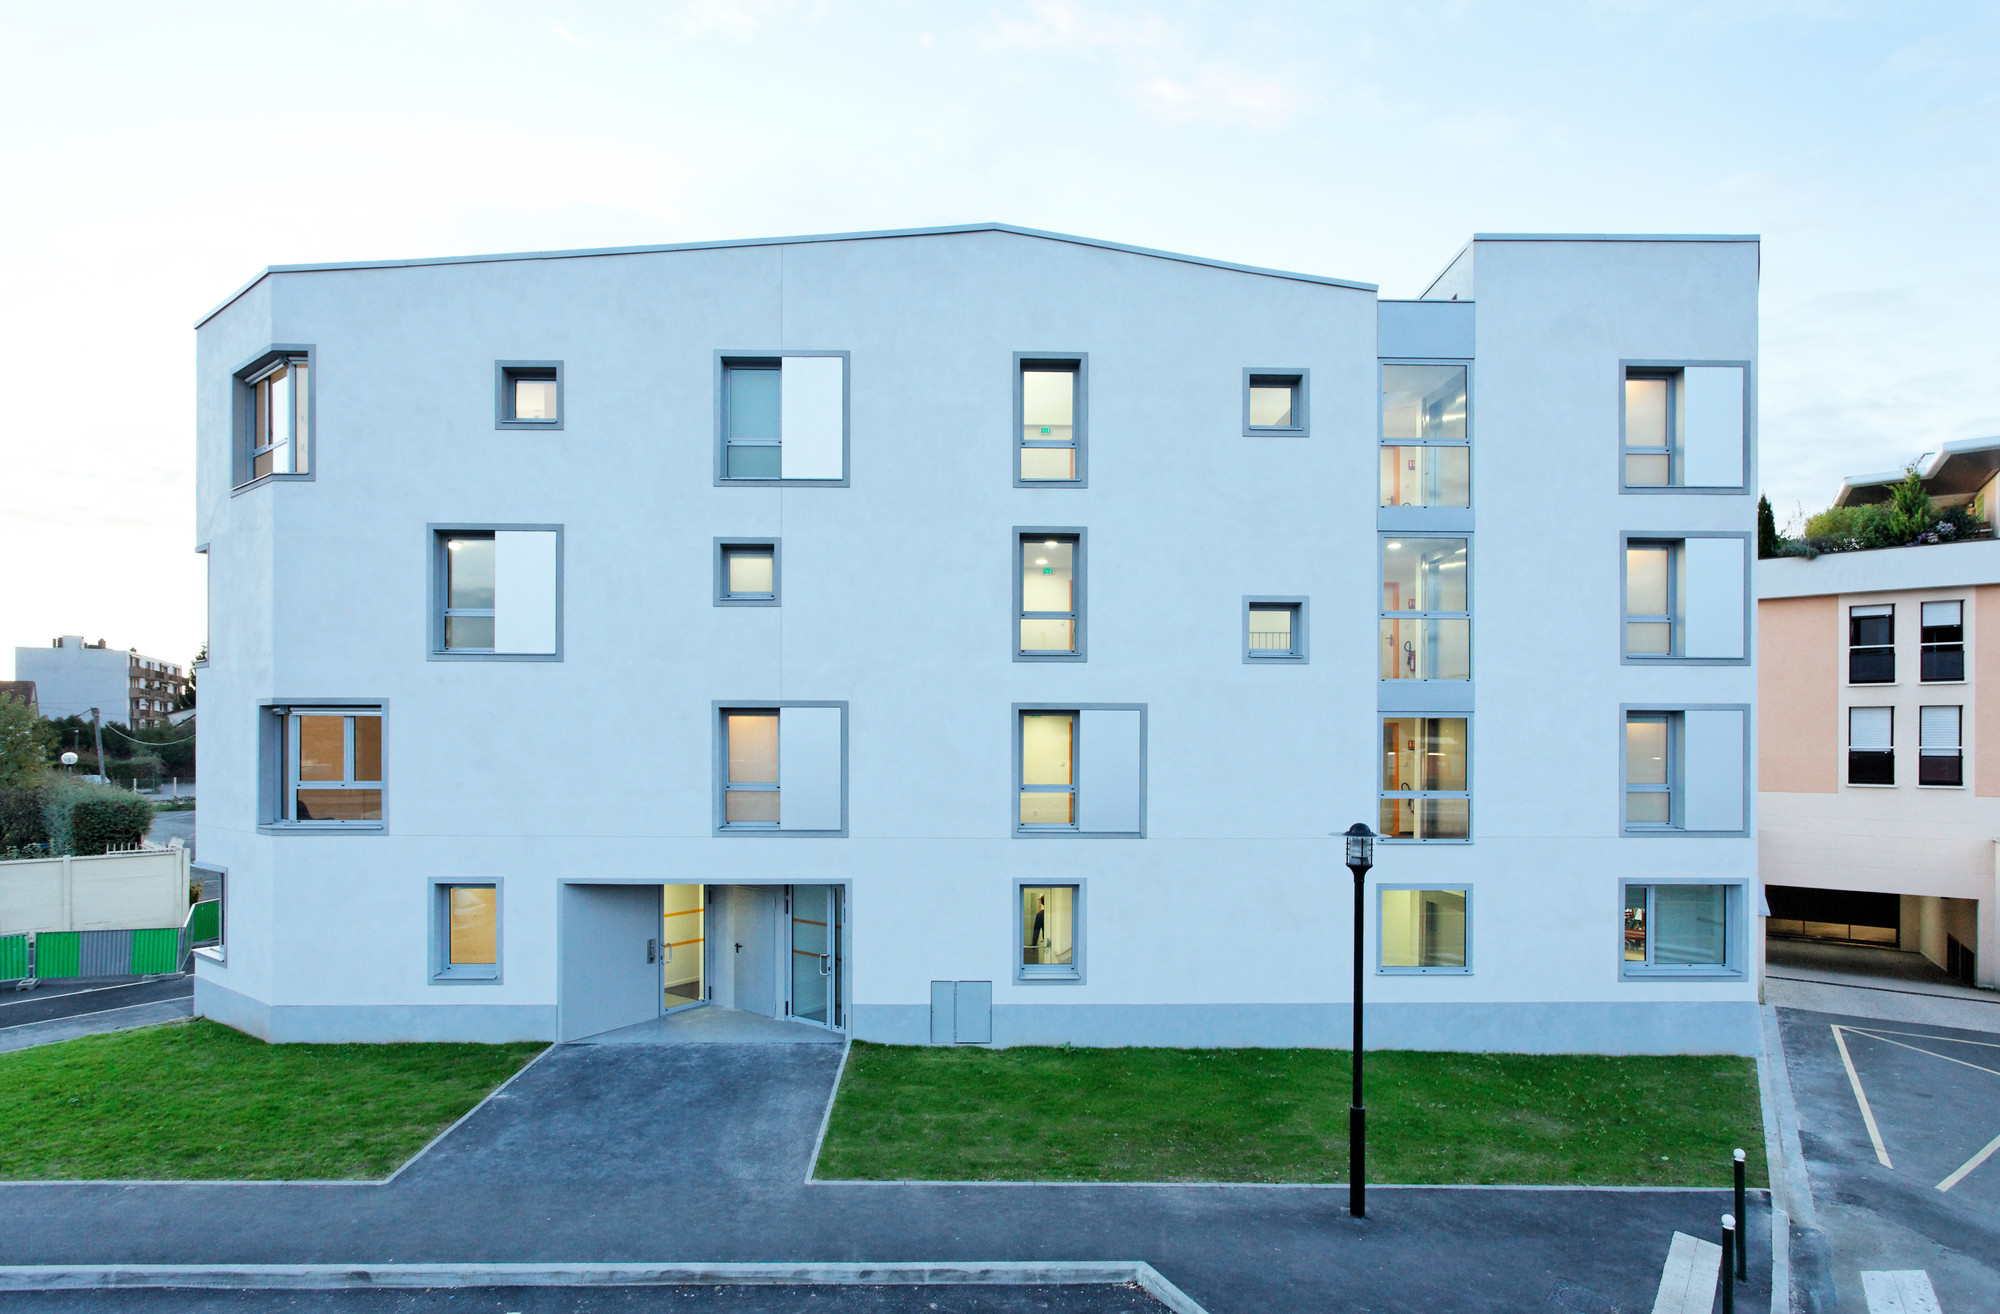 Transition Centre of 24 housing in Rambouillet / Benjamin Fleury, © David Boureau